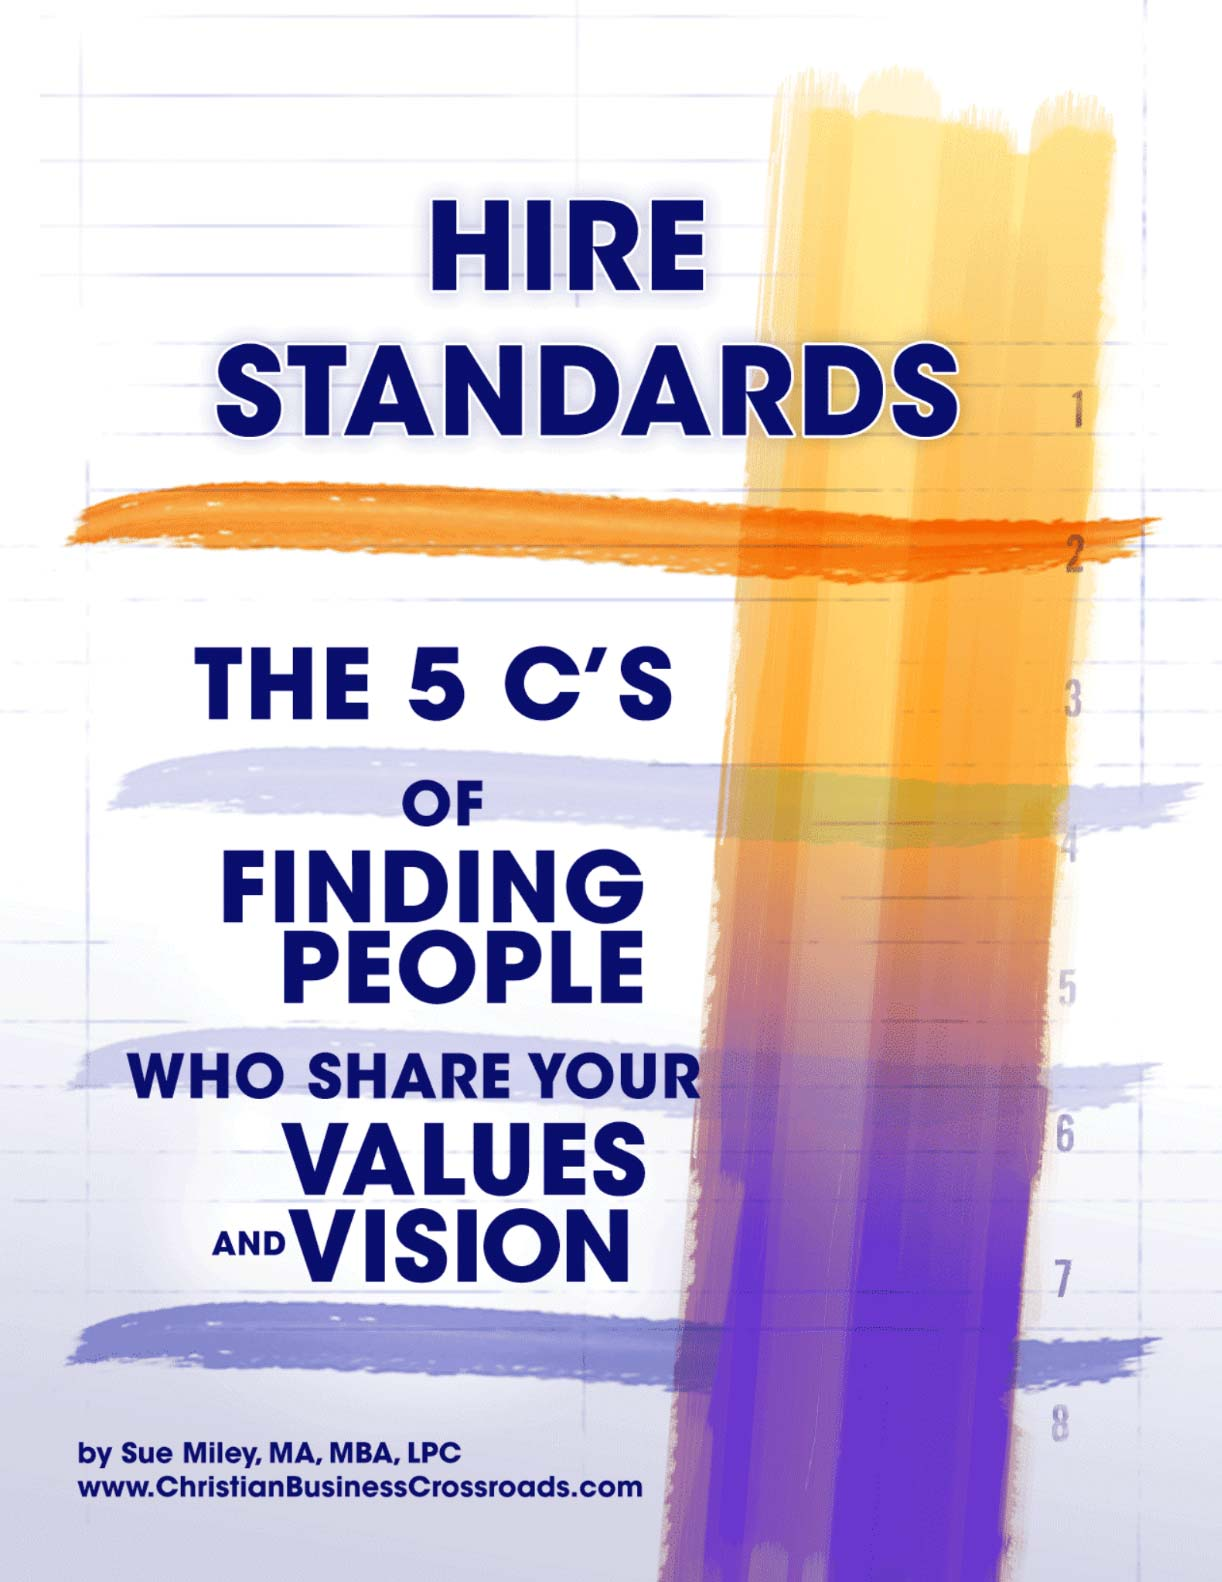 HIre-Standards-Cover